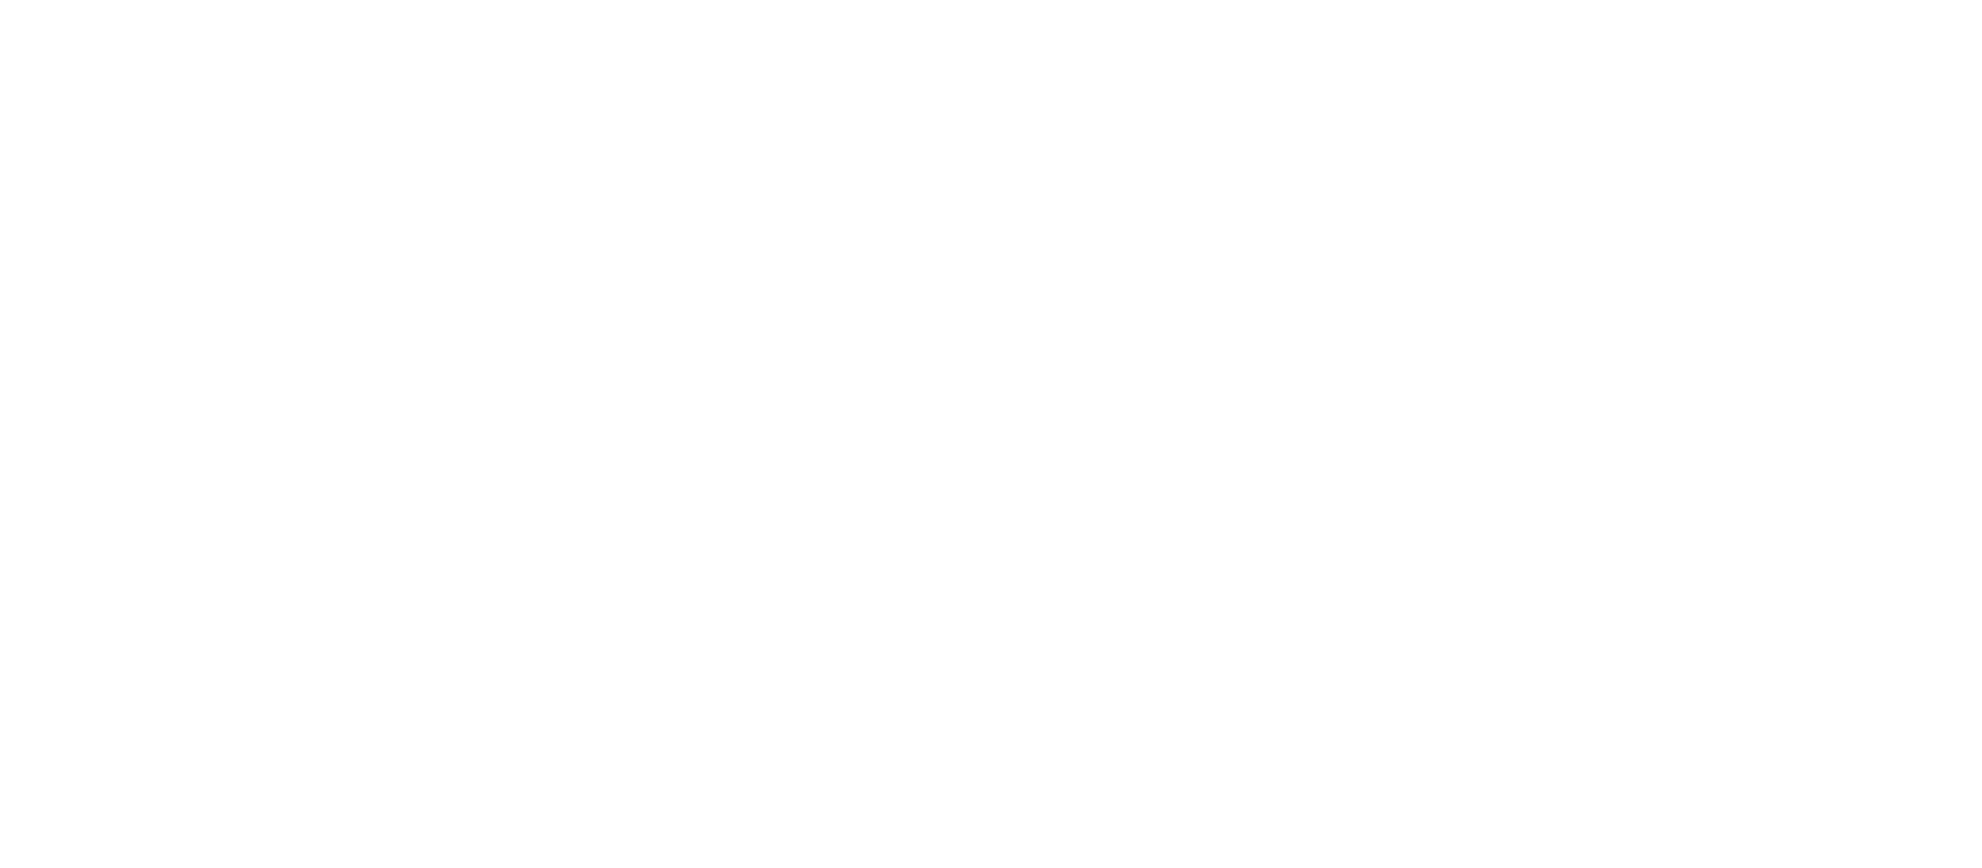 Logo-Boralino-Production-blc